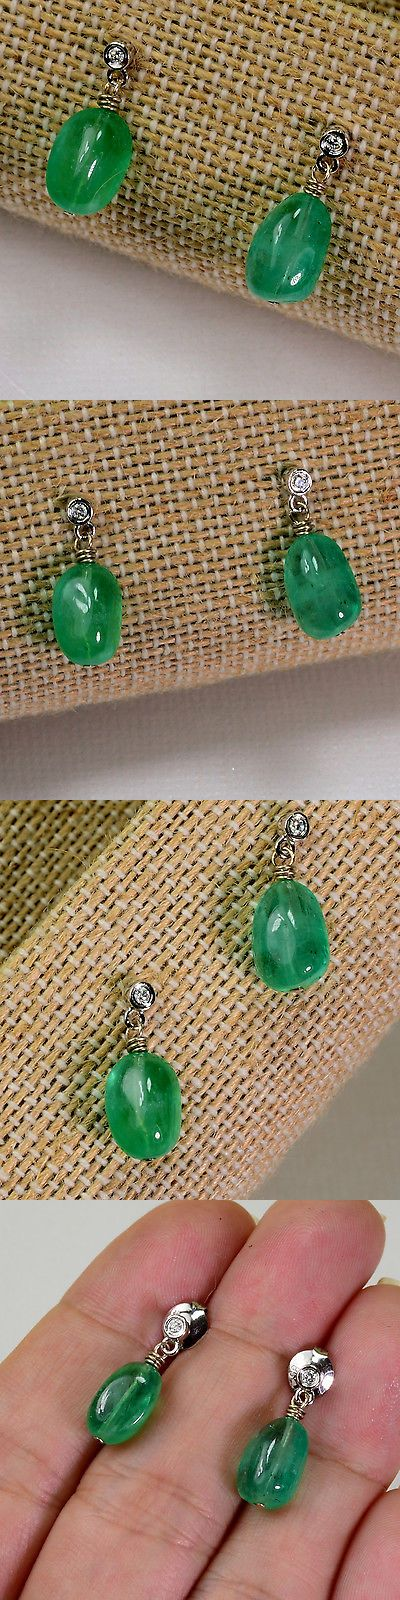 Gemstone 164321: 14K Solid White Gold Diamond 6.5Ct Emerald Nuggets Earrings BUY IT NOW ONLY: $750.0